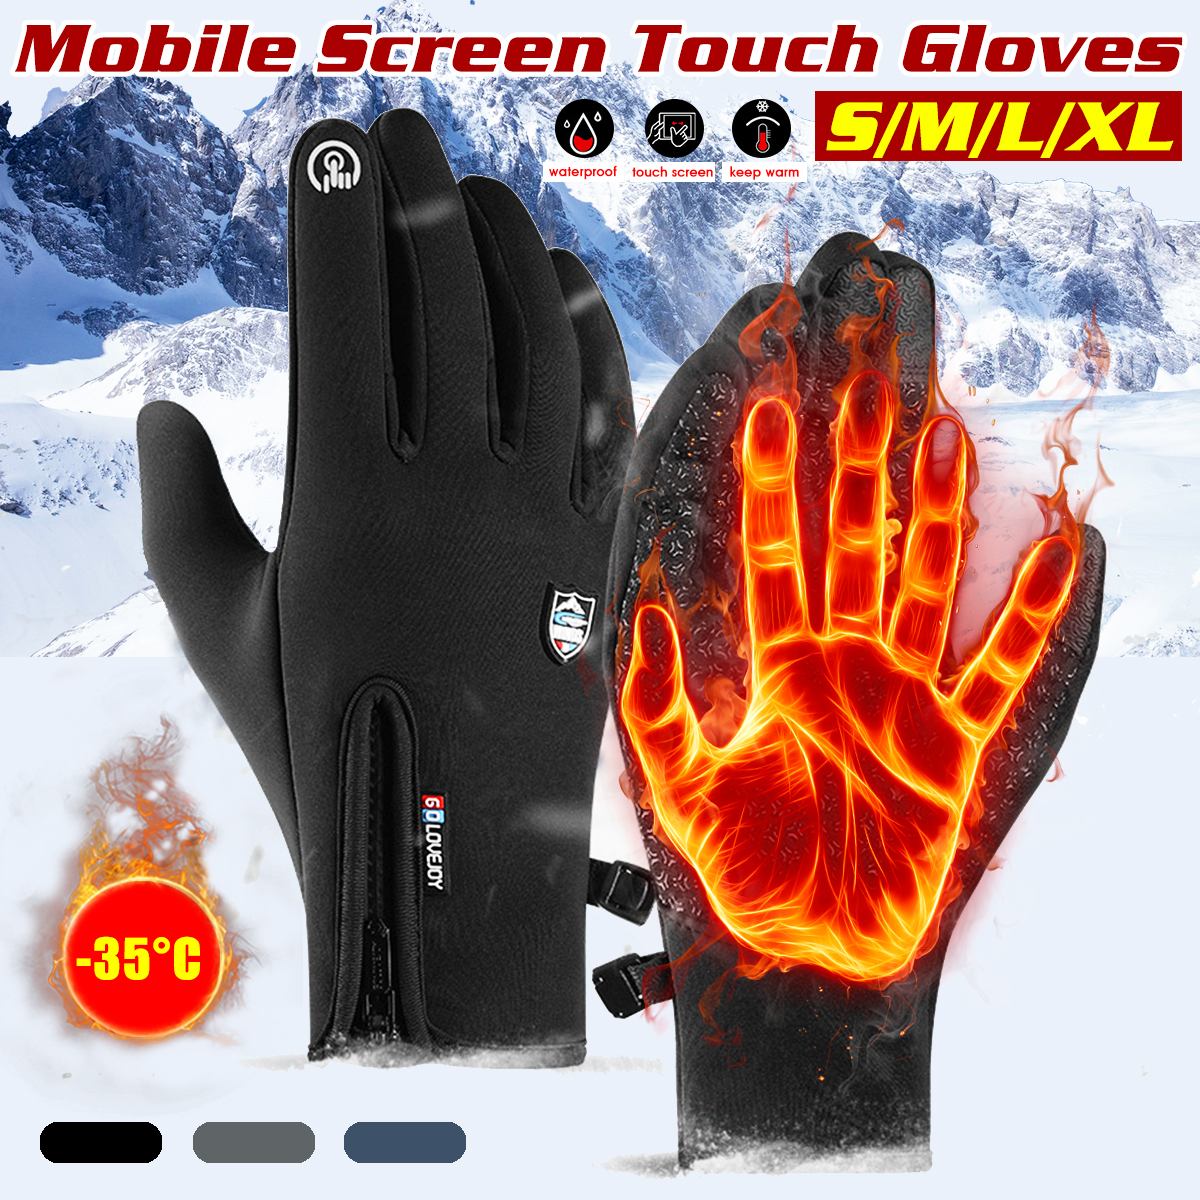 Ski Gloves Waterproof Fleece Thermal Gloves Snowboard Snowmobile Gloves Men Women Winter Gloves For Sonwboarding